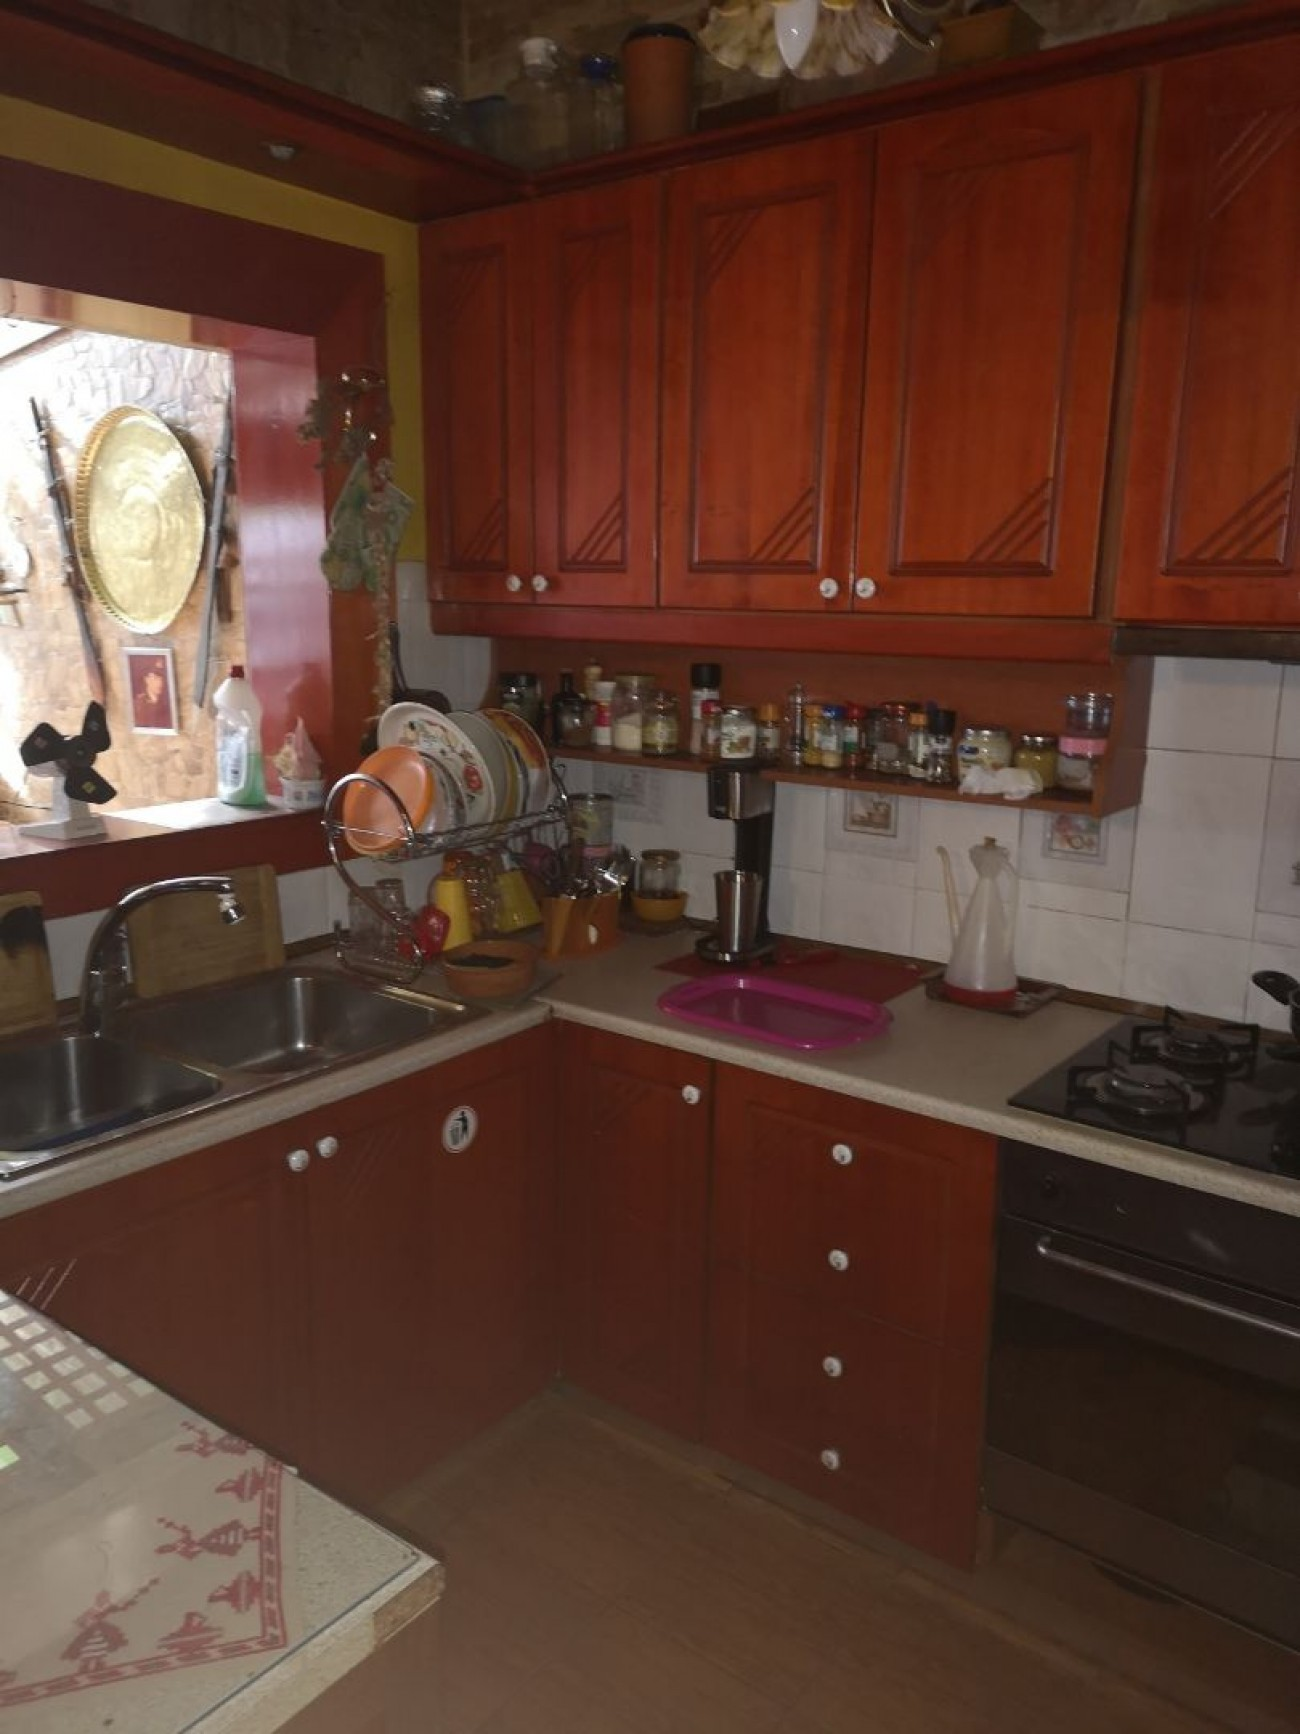 House for Sale in Peristeri, Central & West Region of Athens, Greece